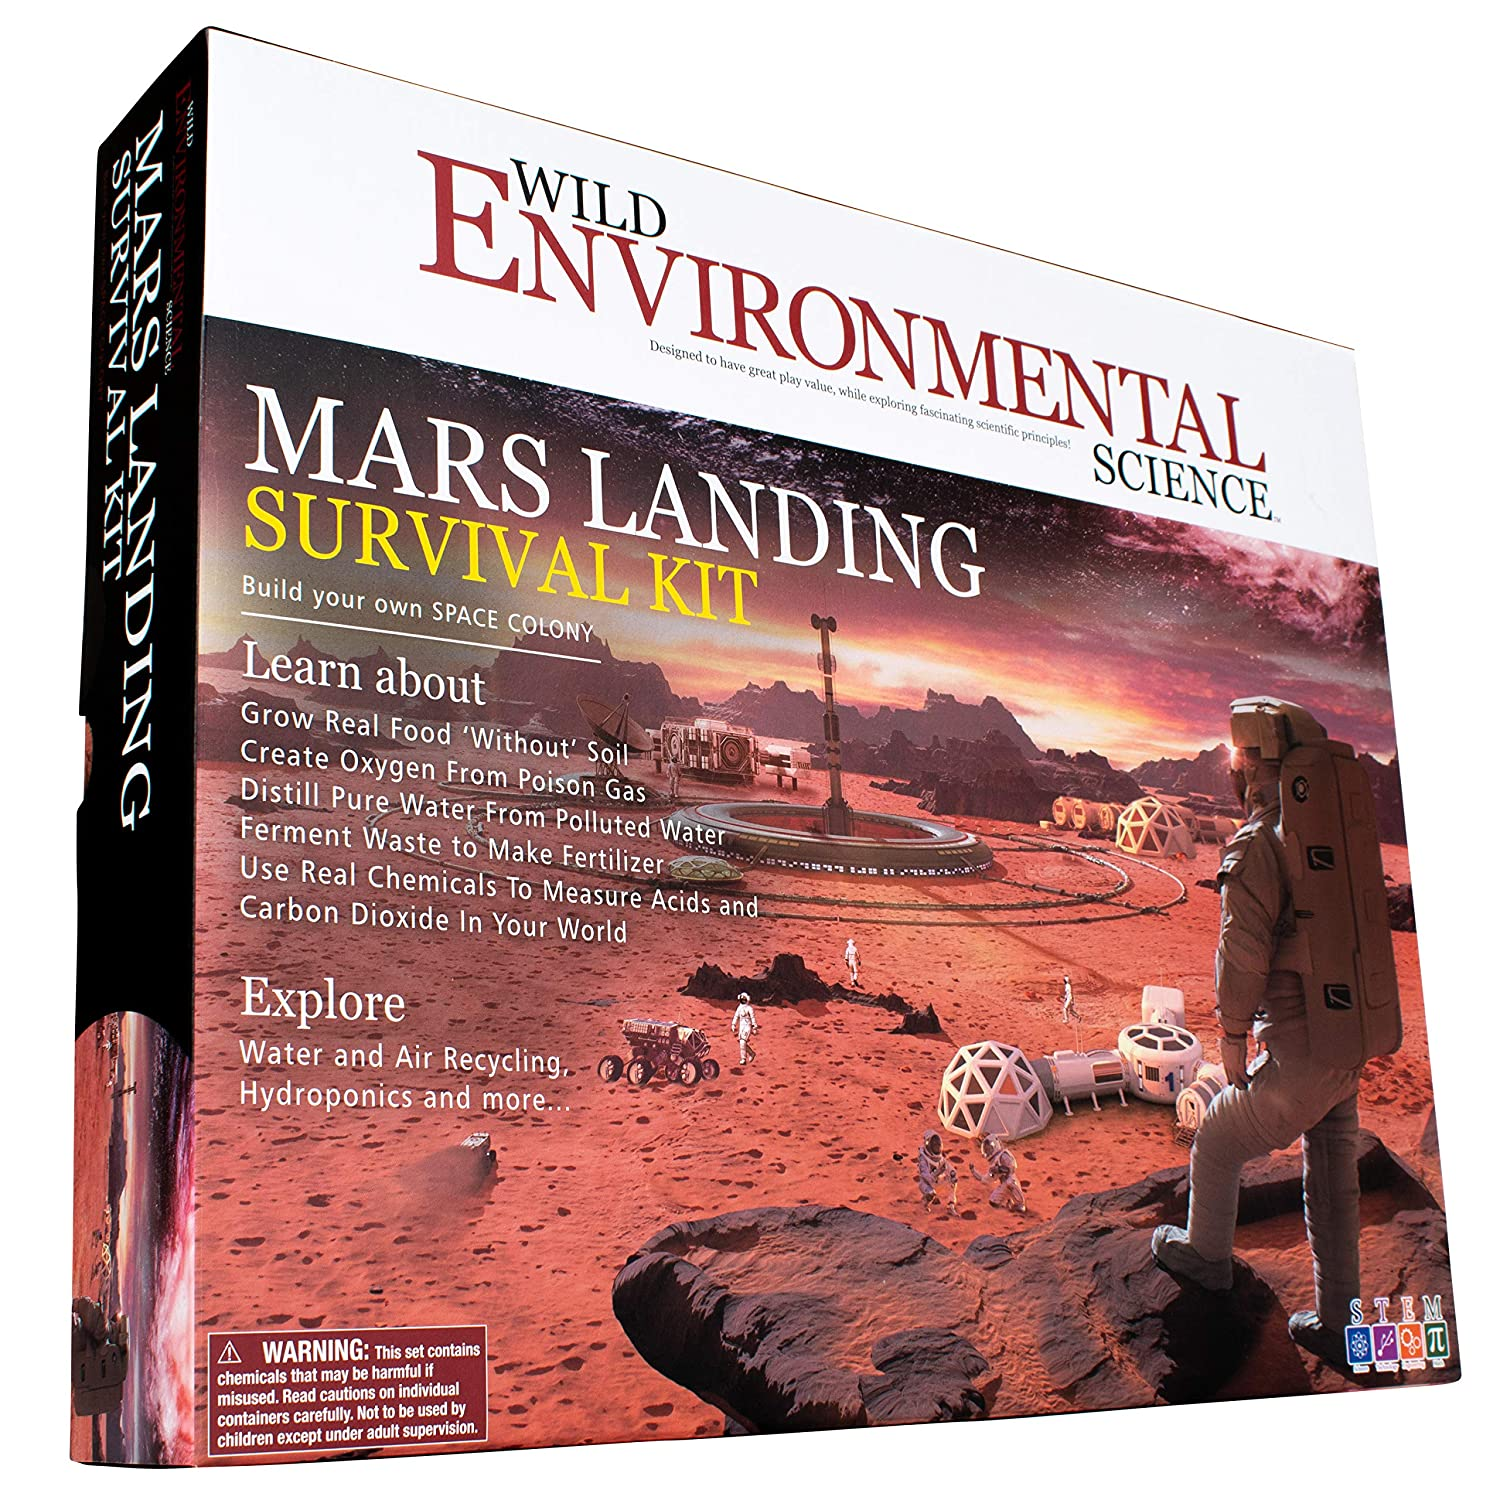 Wild! Science-WES32XL Environmental Science Mars Landing Survival Kit - Home STEM Kit - Ages 8+ - Grow Food & Build an Earth-Like Environment on Mars